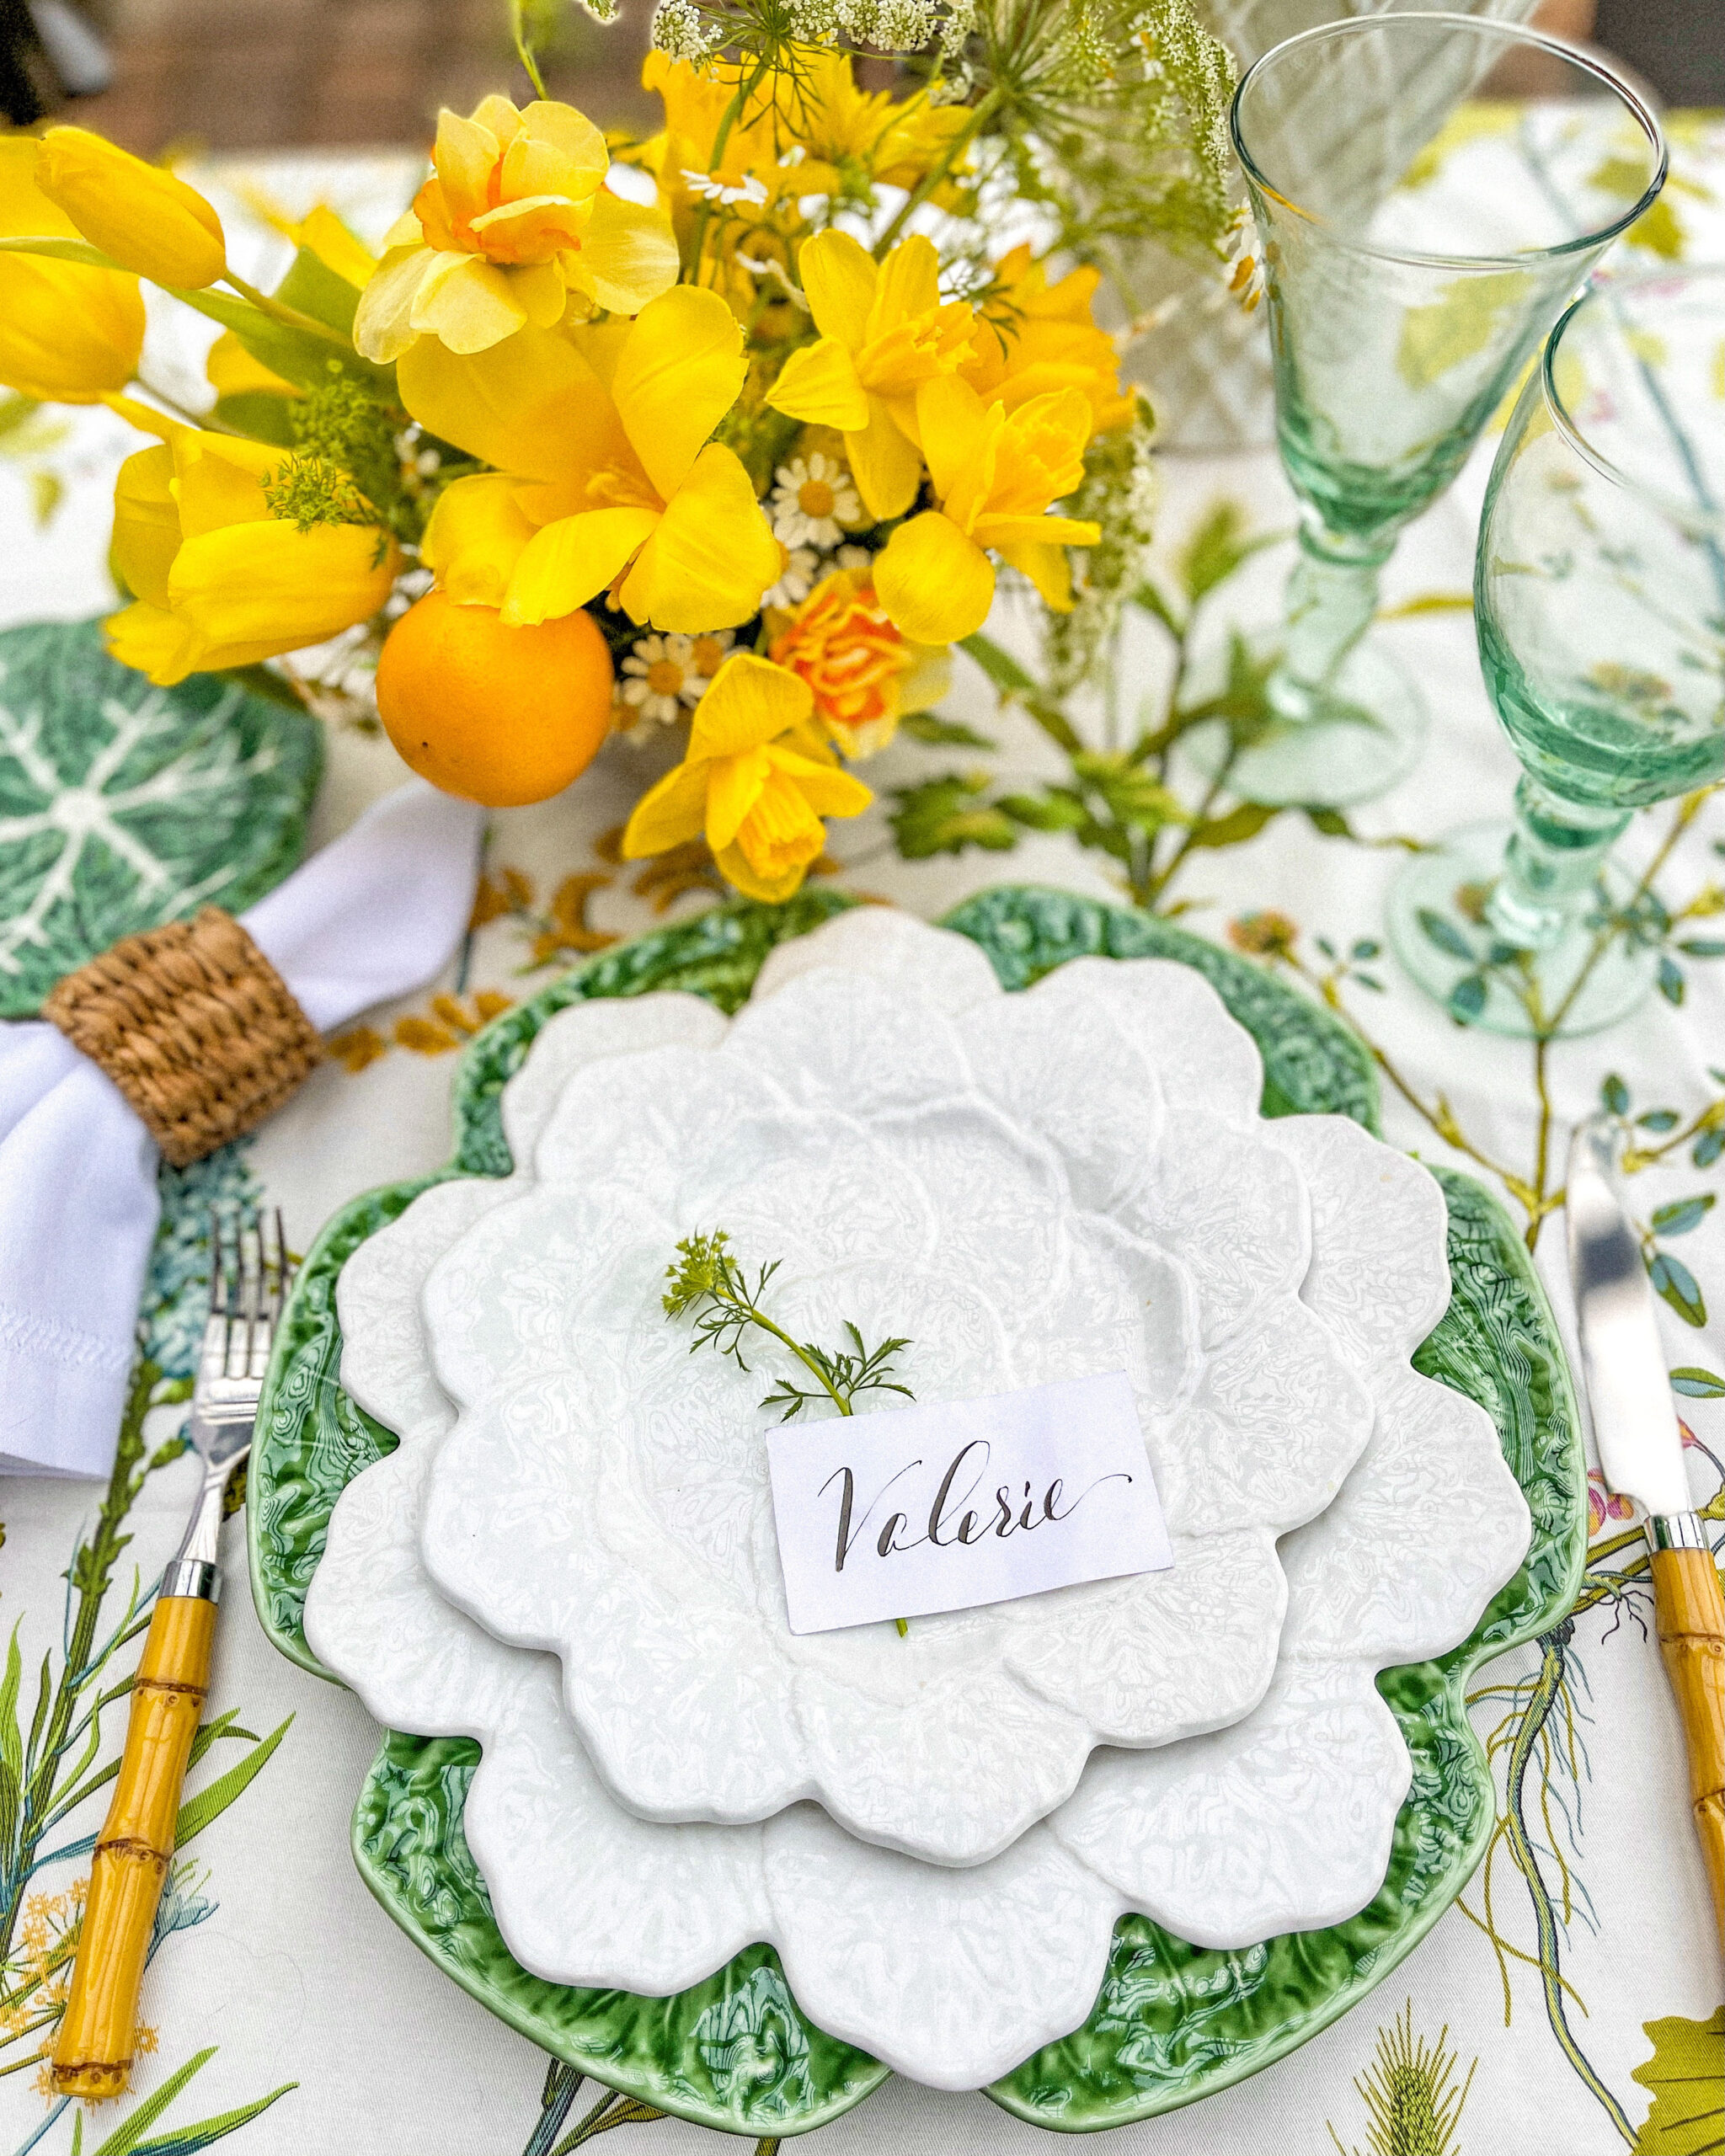 Spring table with cabbage plates